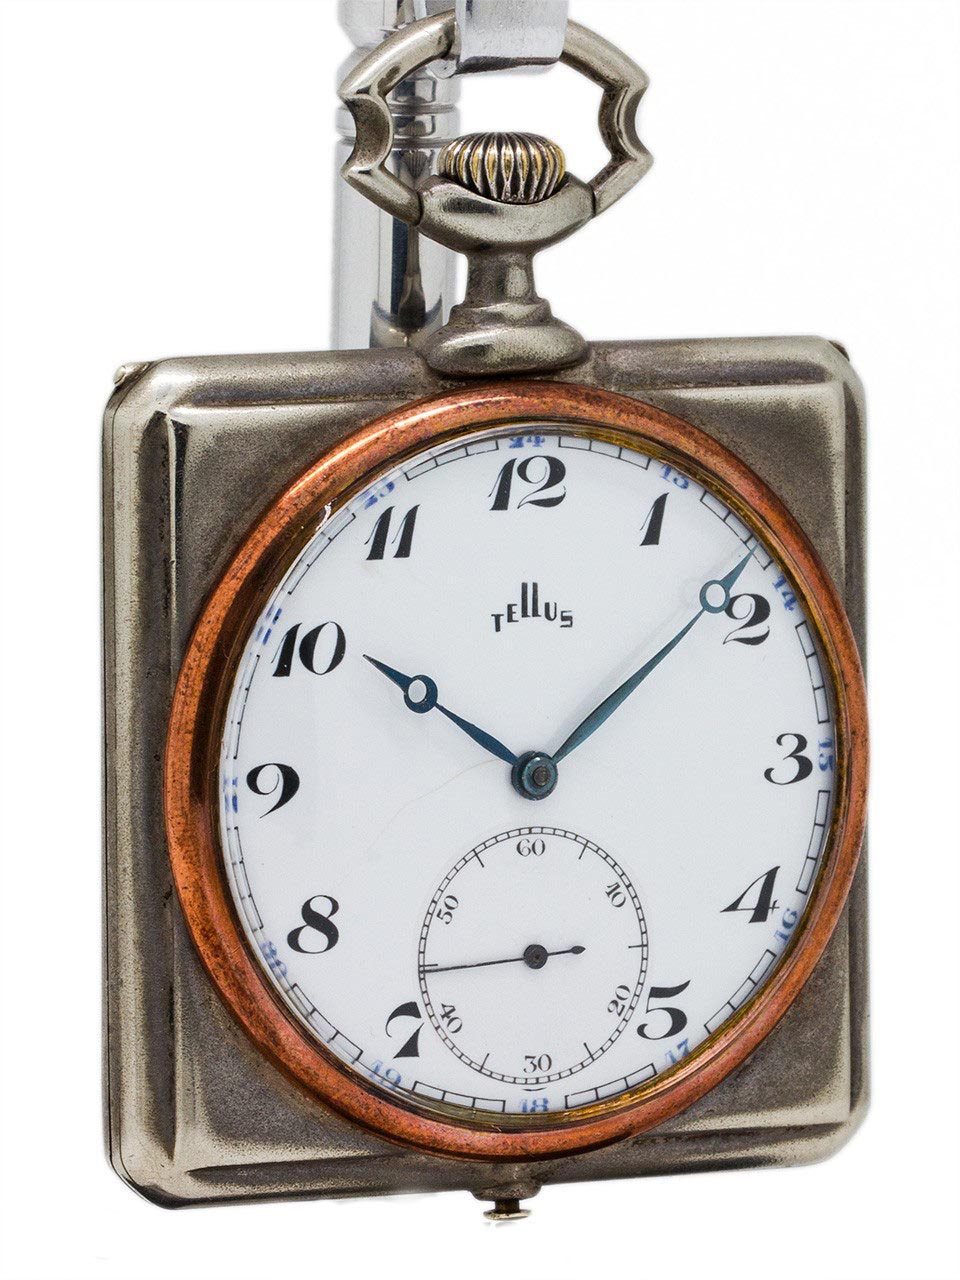 Steam Powered Automobile Pocket Watch Clock circa 1920's